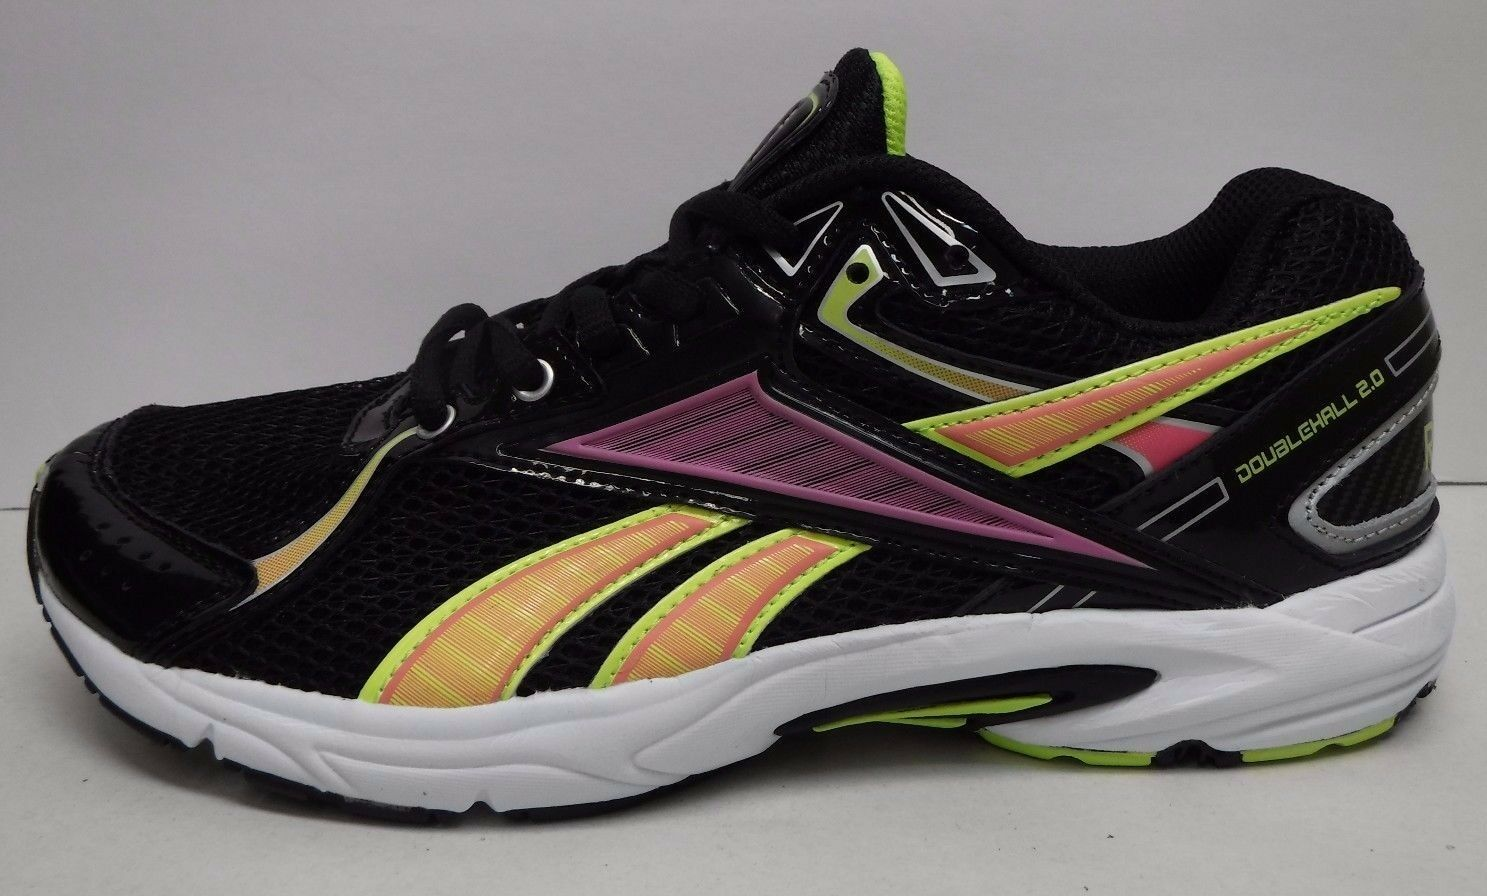 Reebok Taille 9 Double Hall 2.0 Running baskets New femmes chaussures